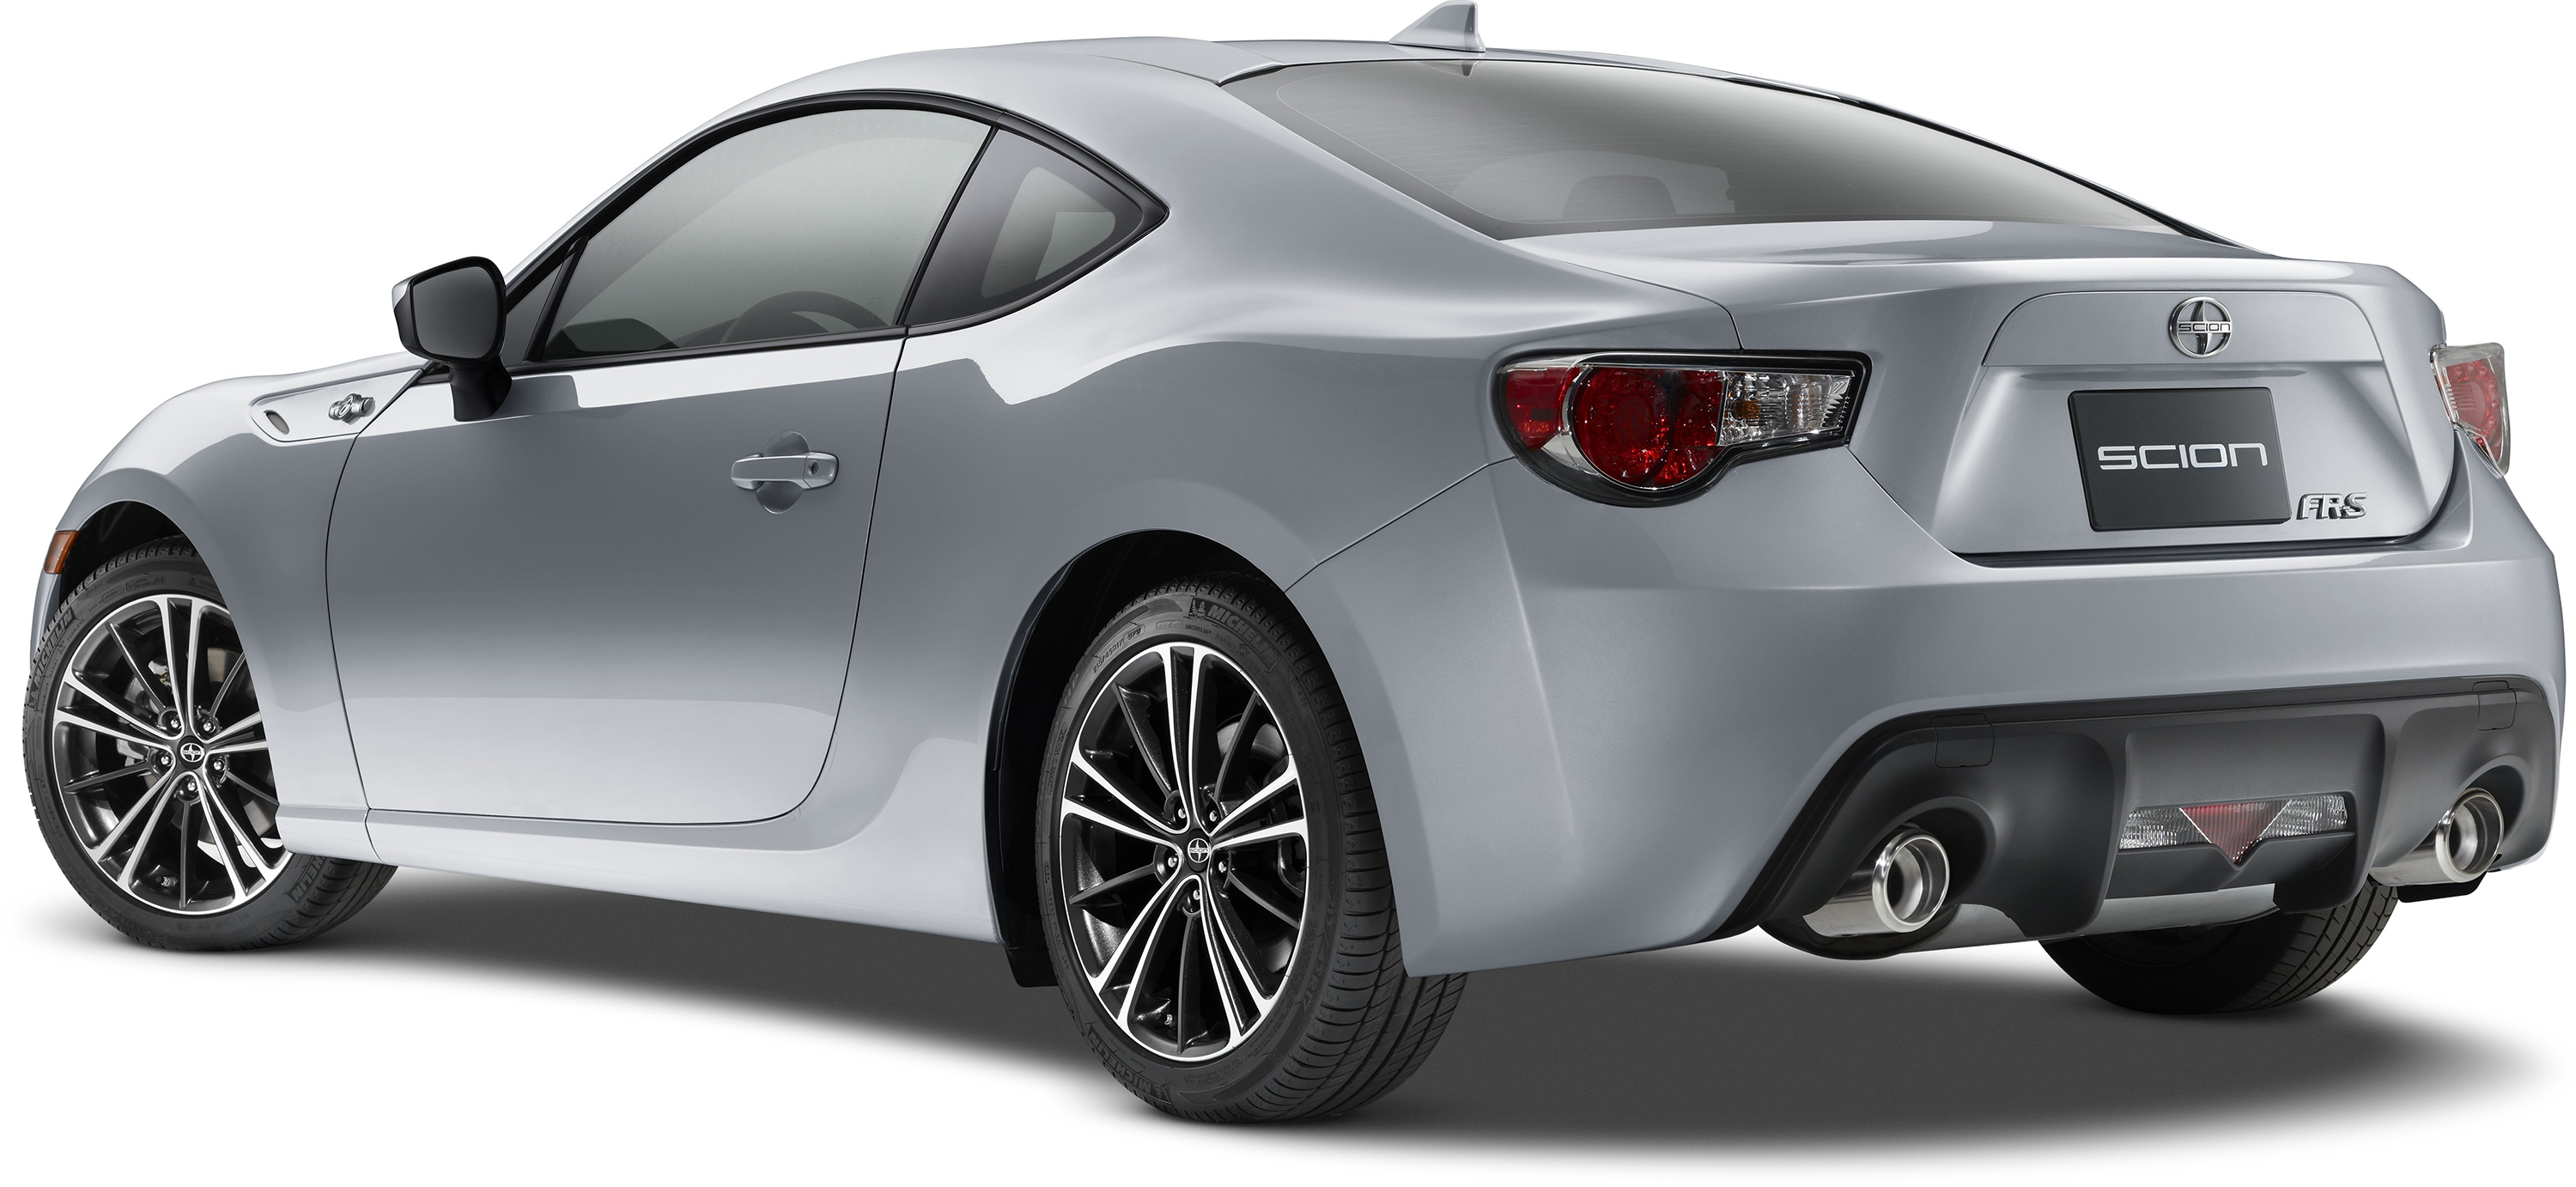 scion models getting rolled into toyota portfolio hesser toyota